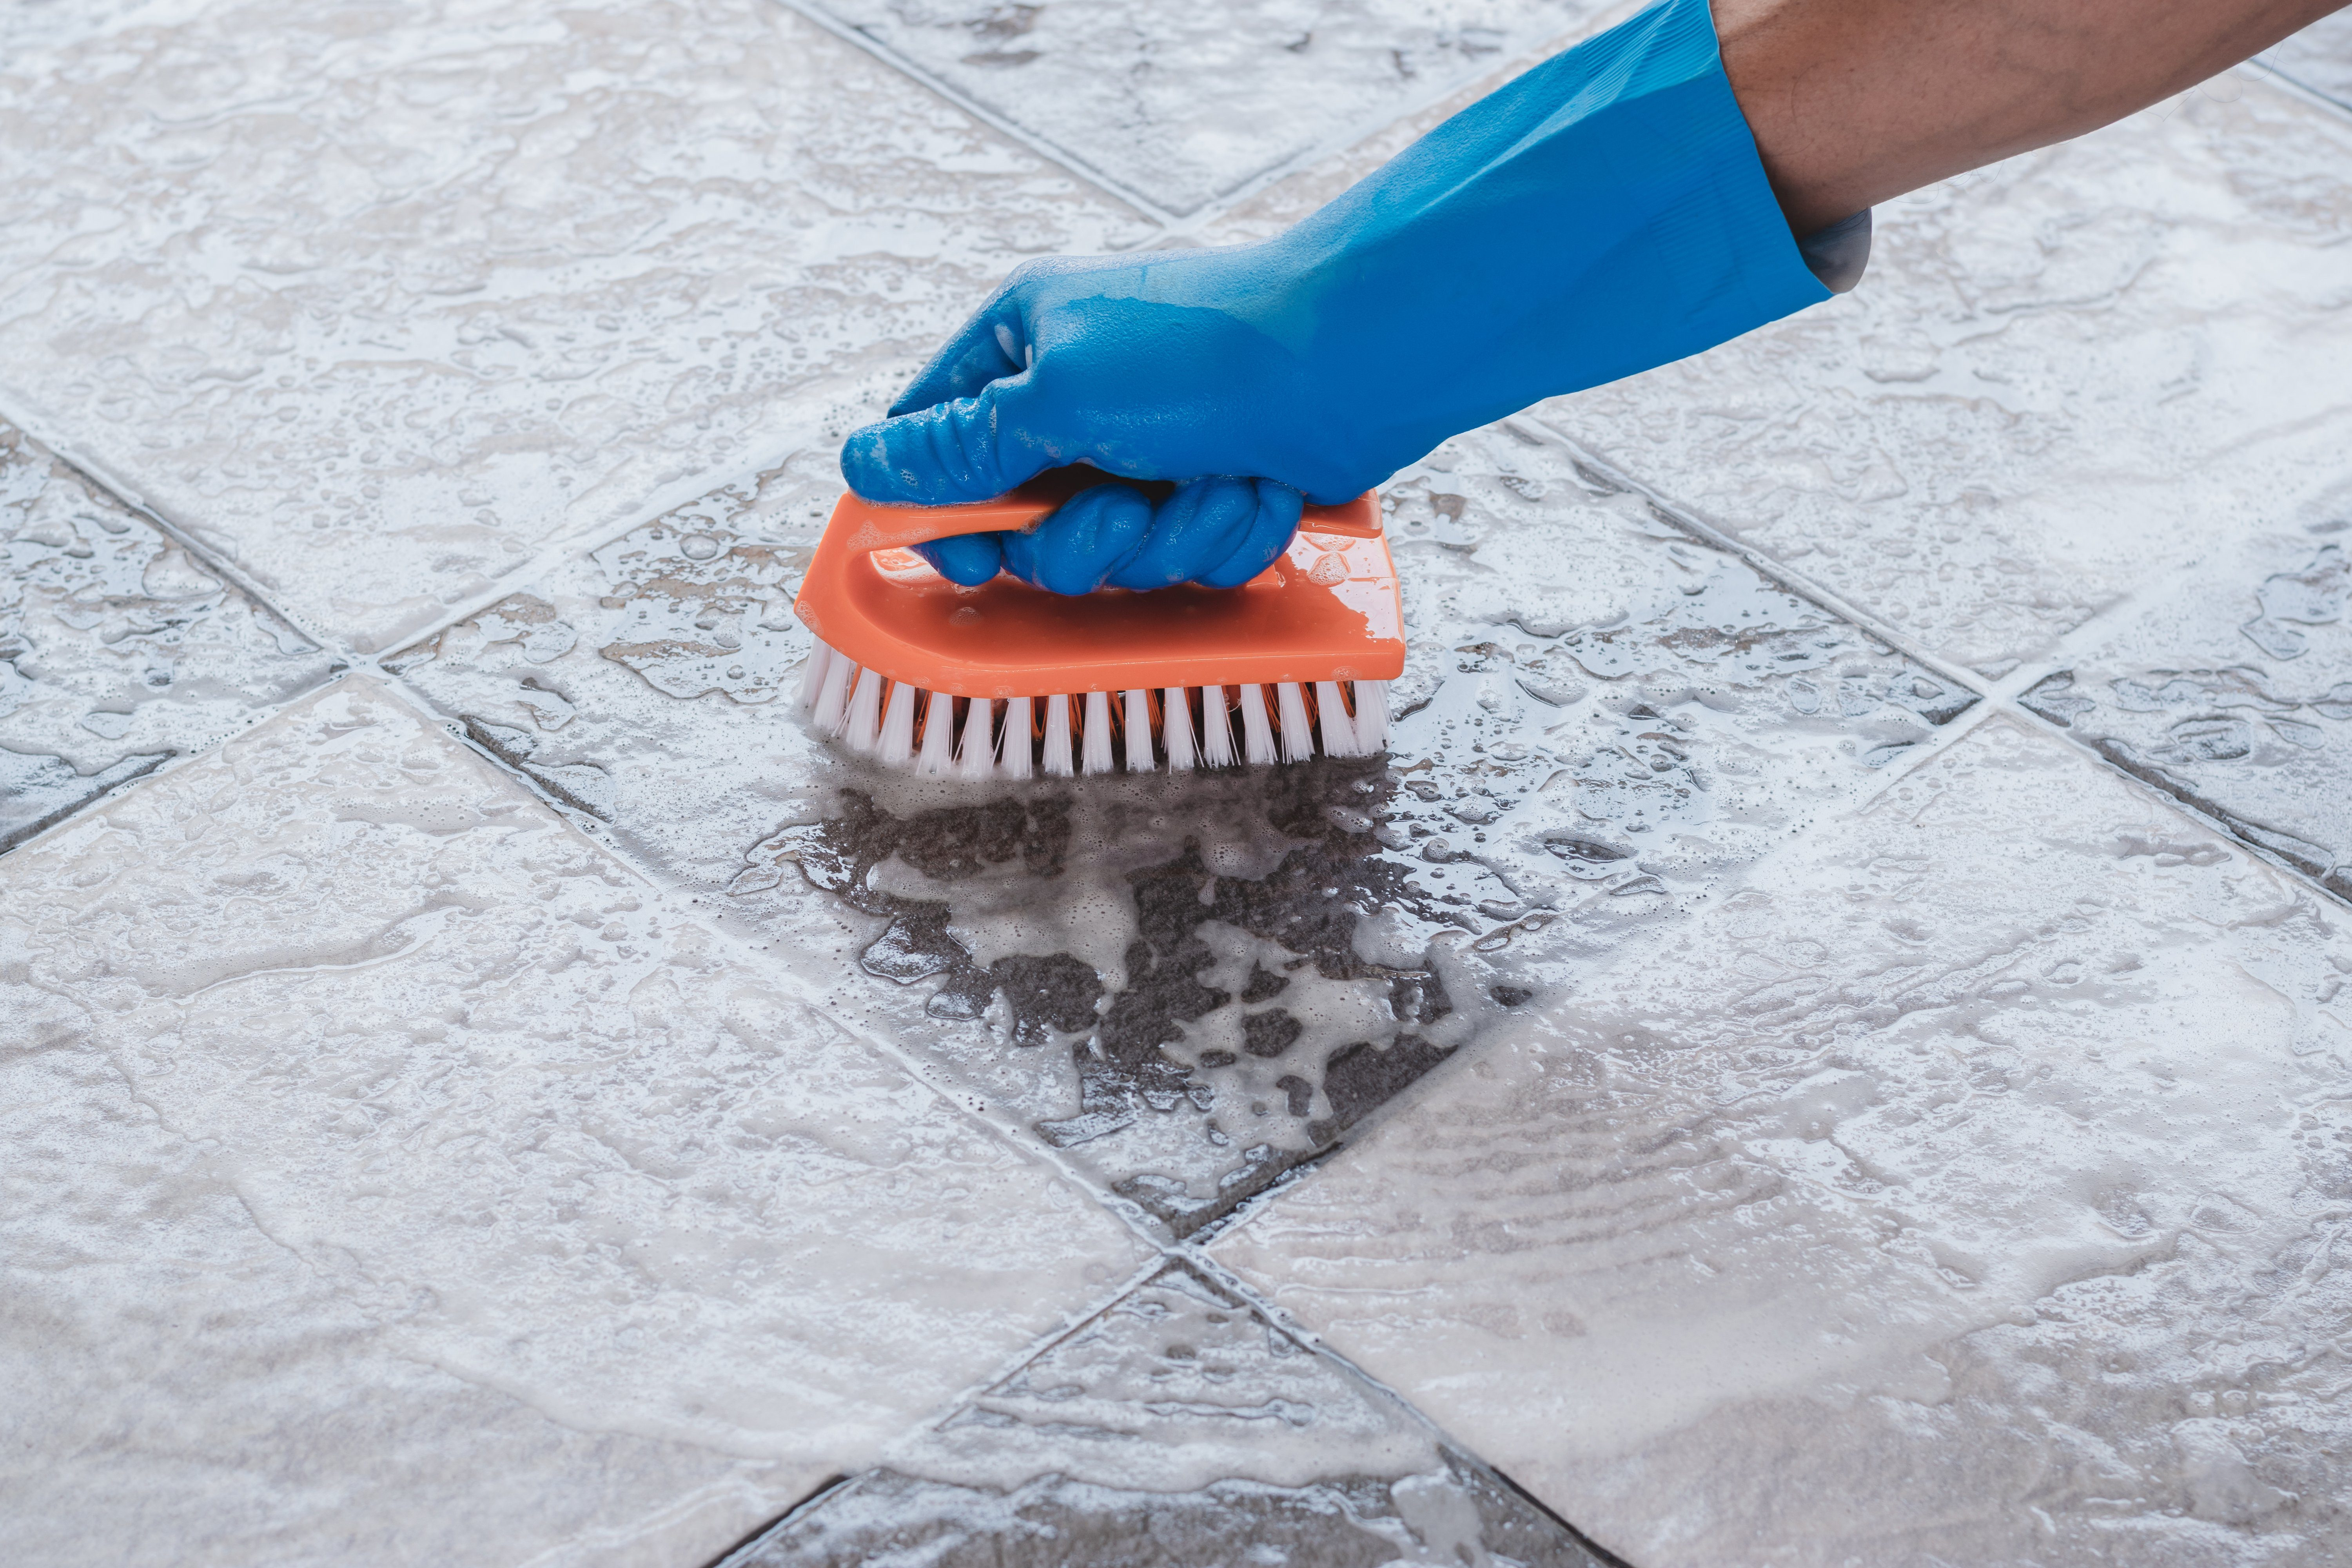 Cleaning on the tile floor